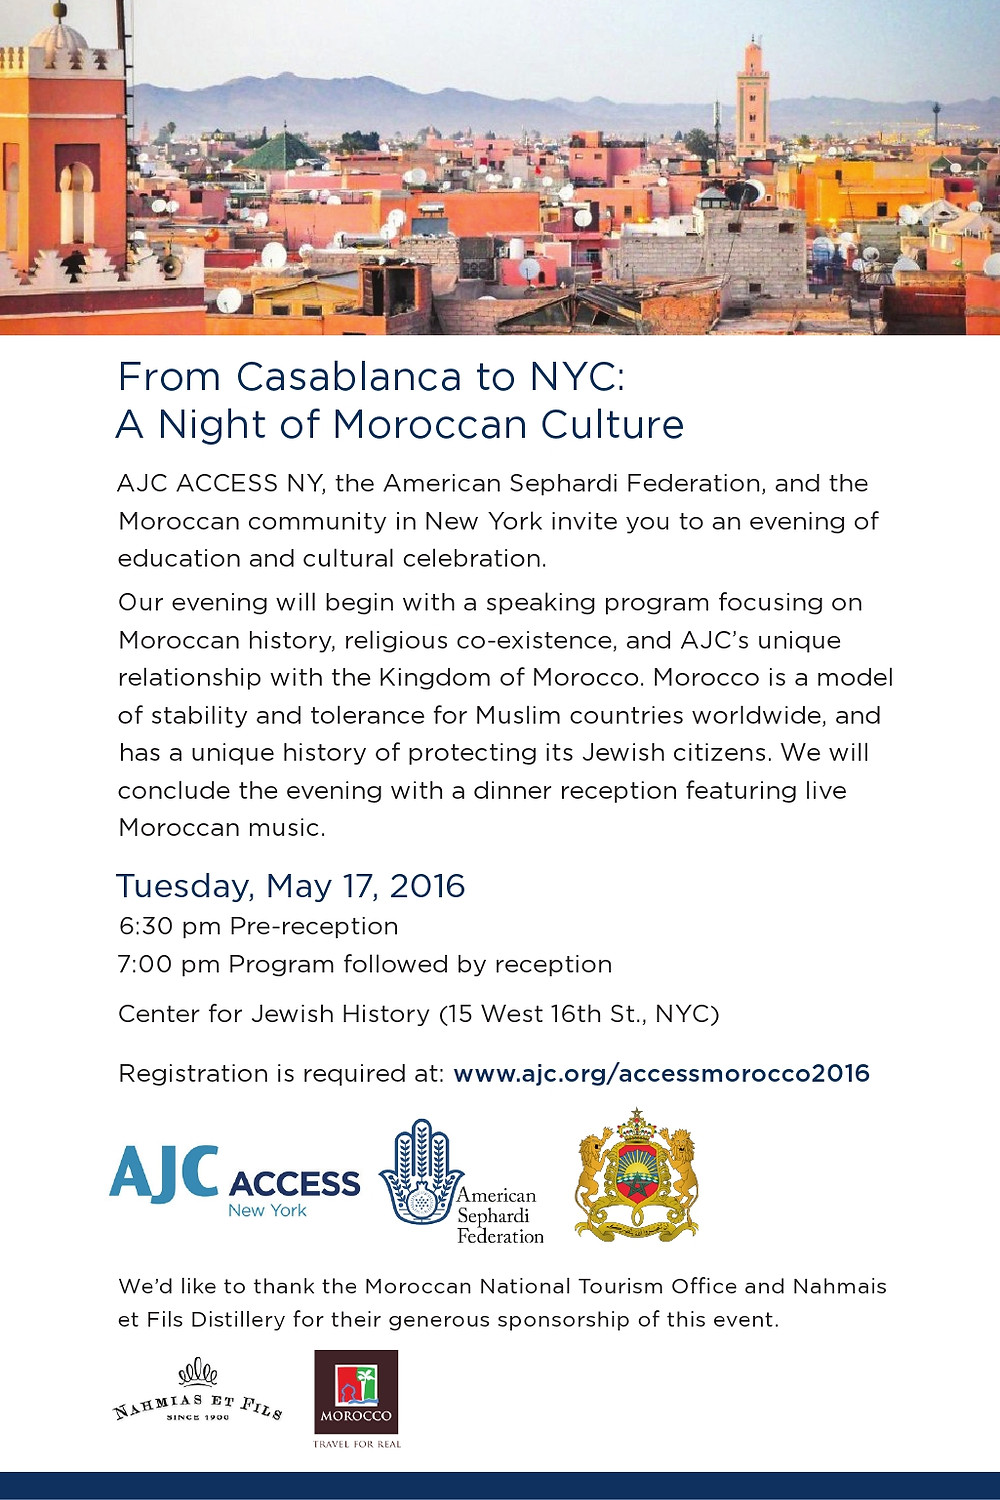 From Casablanca to NYC: A Night of Moroccan Culture - The Culture News